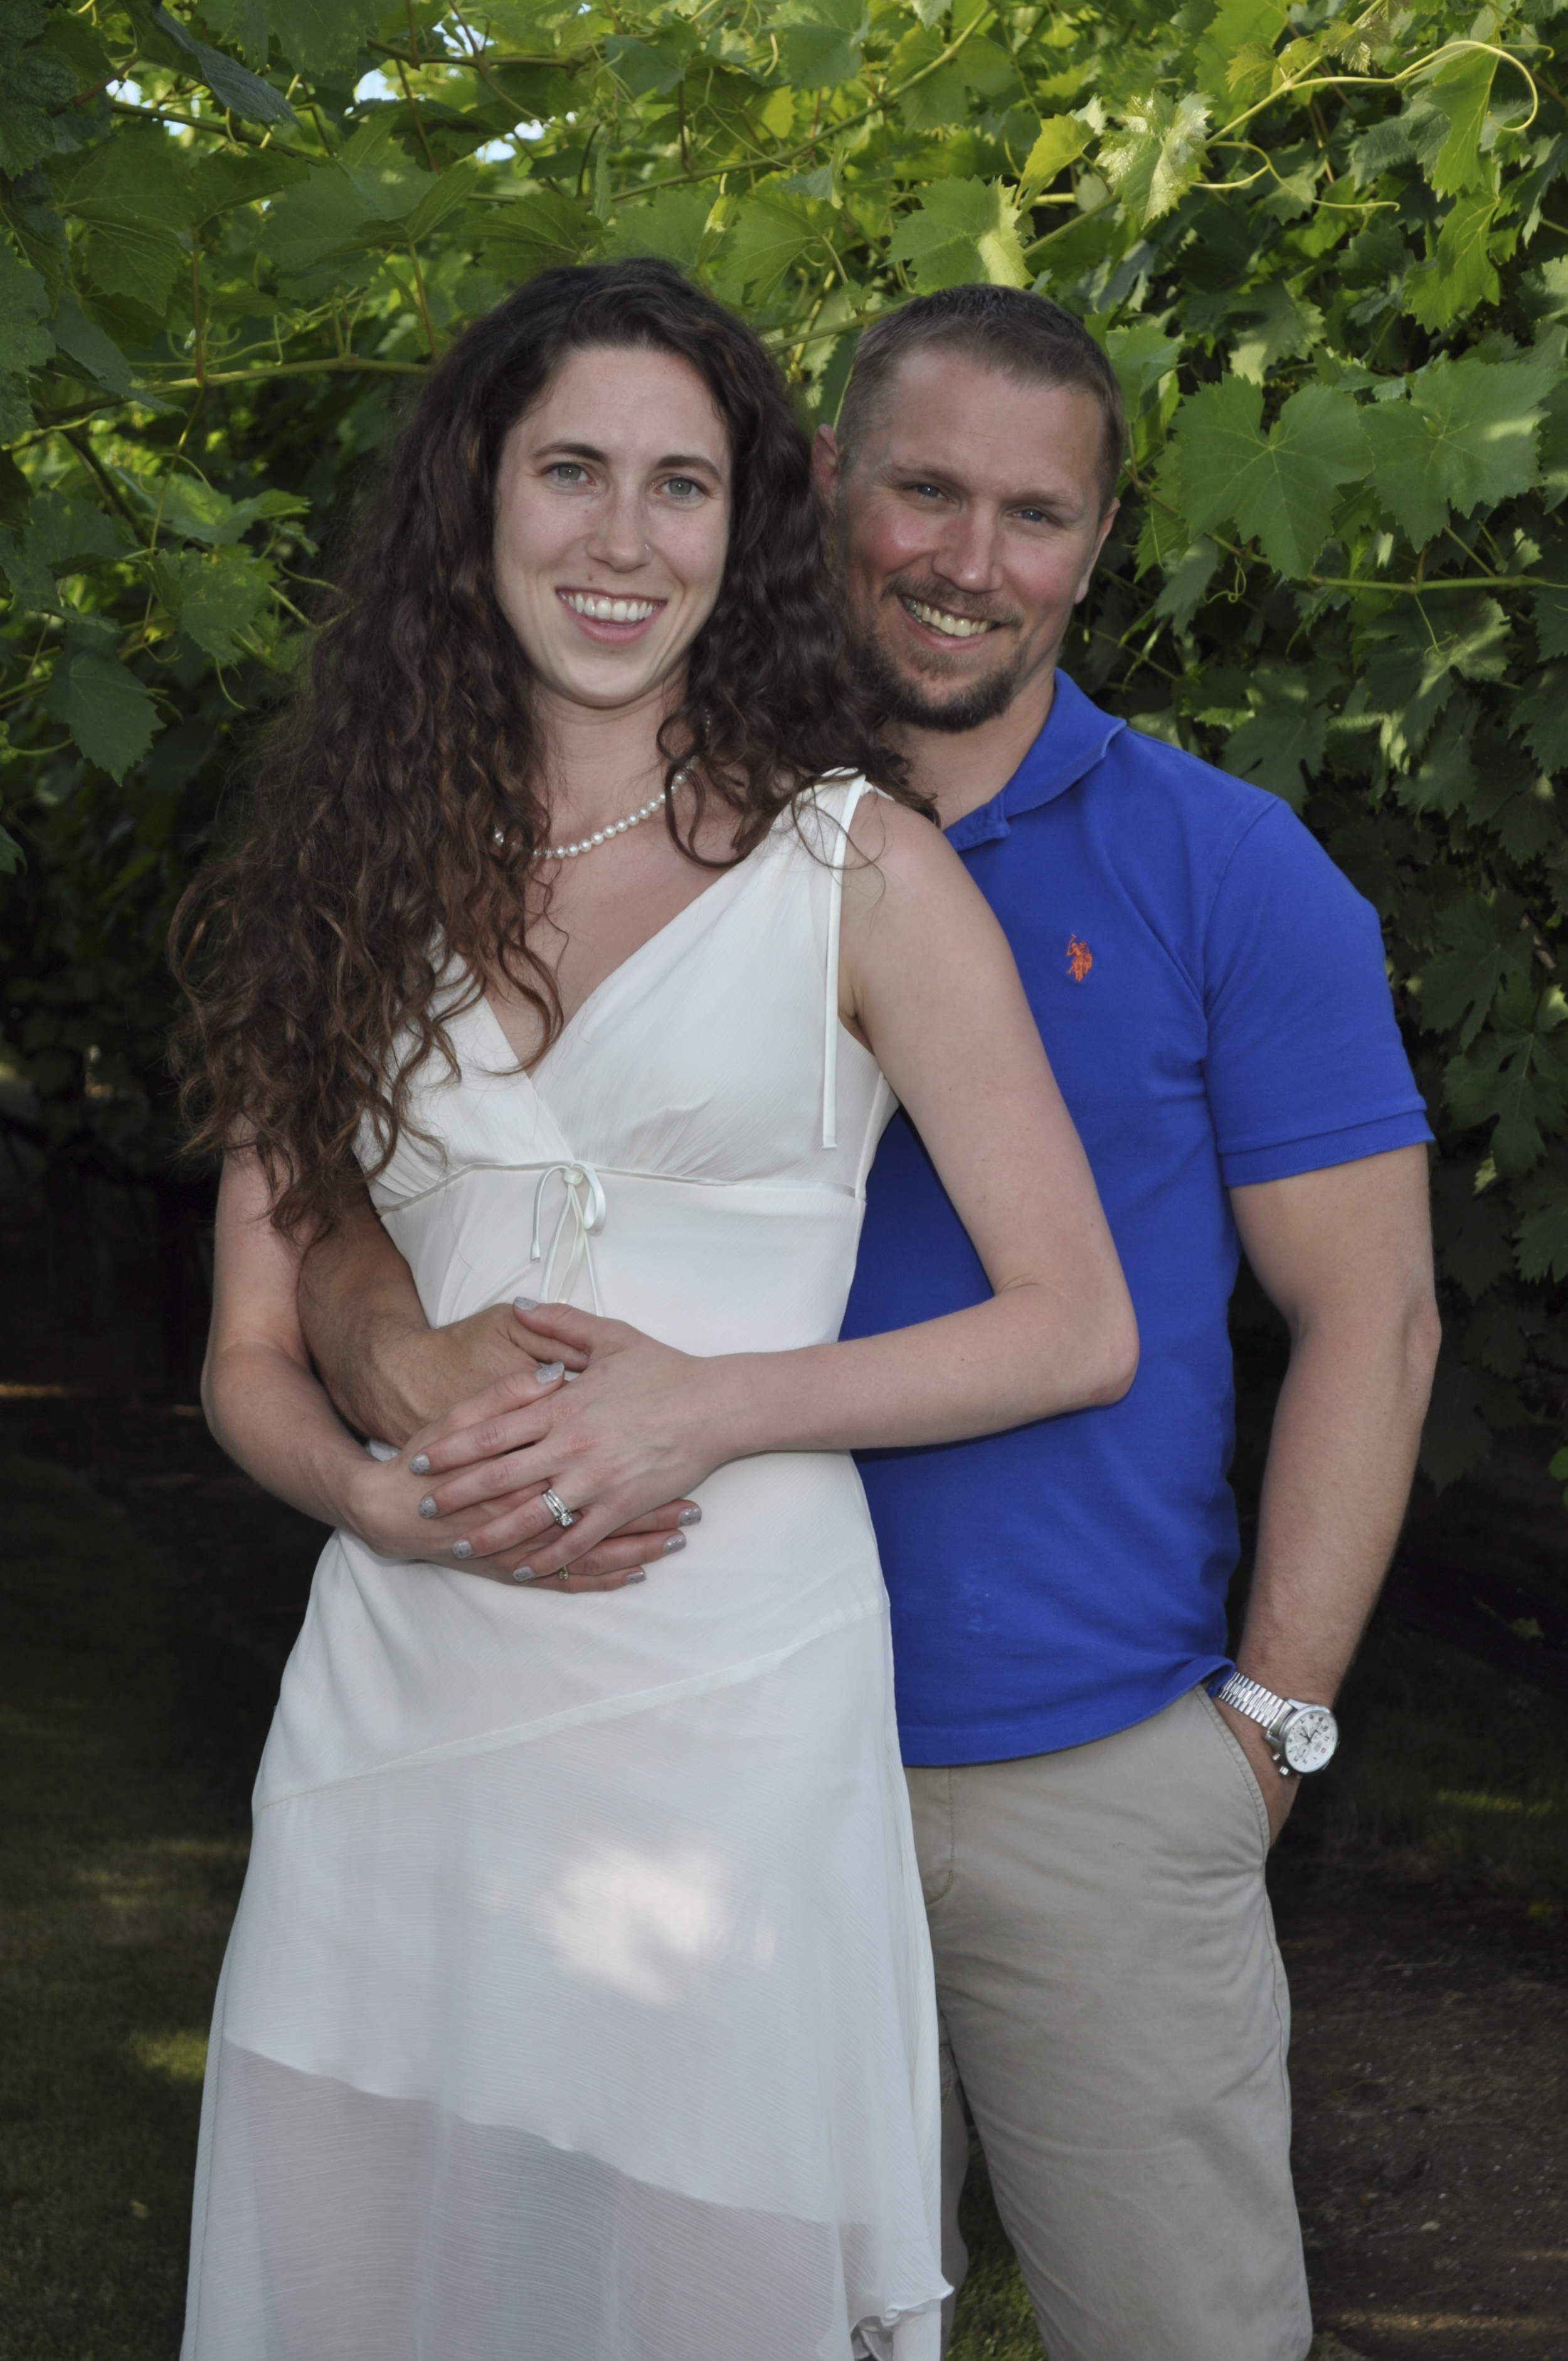 Wedr:Laura Leigh and Cory Tolliver